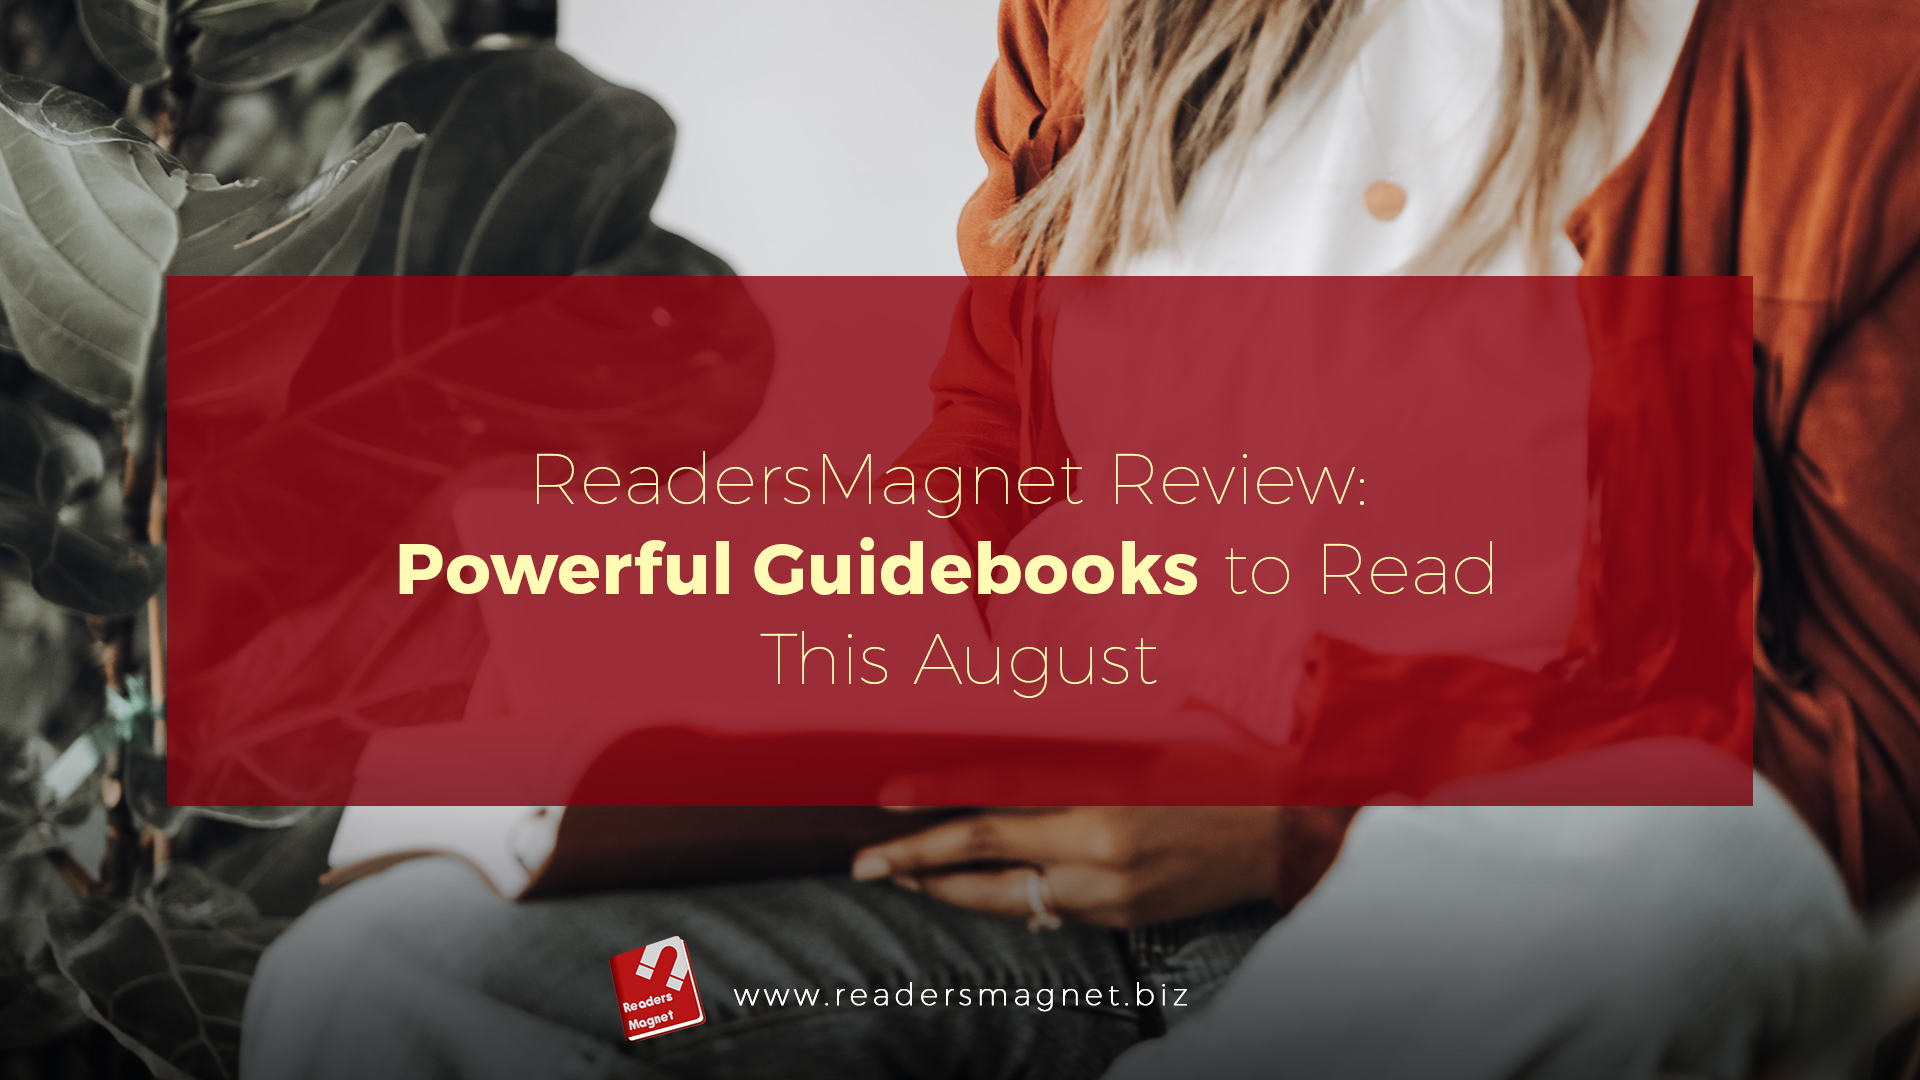 ReadersMagnet Review: Powerful Guidebooks to Read This August